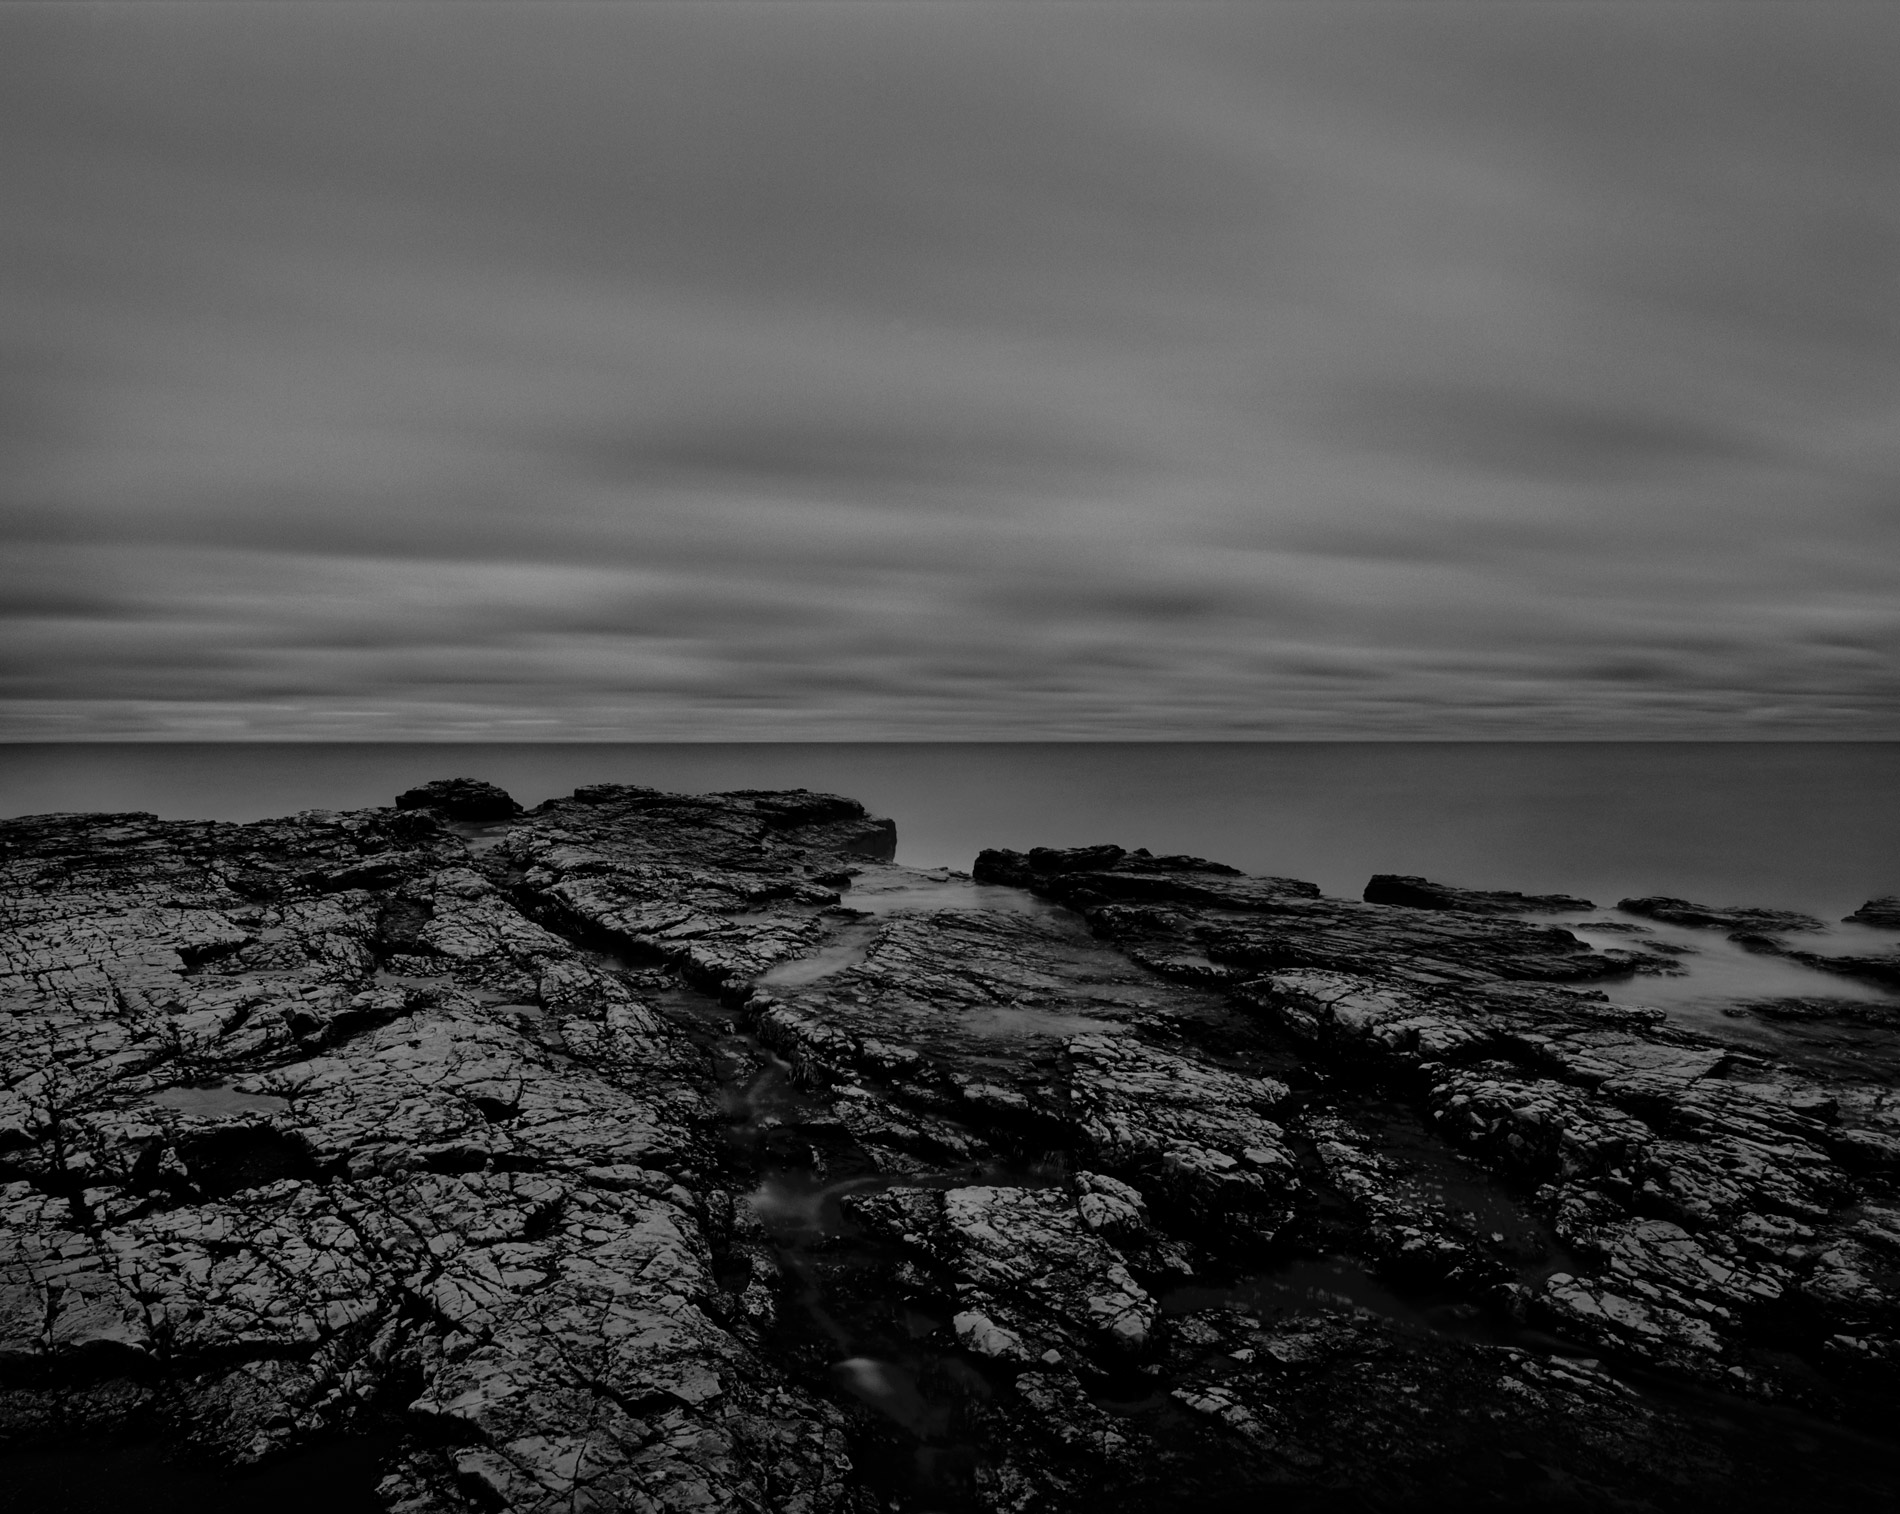 Black rocks in water dark sky fine art photography copyright Kenneth Rimm